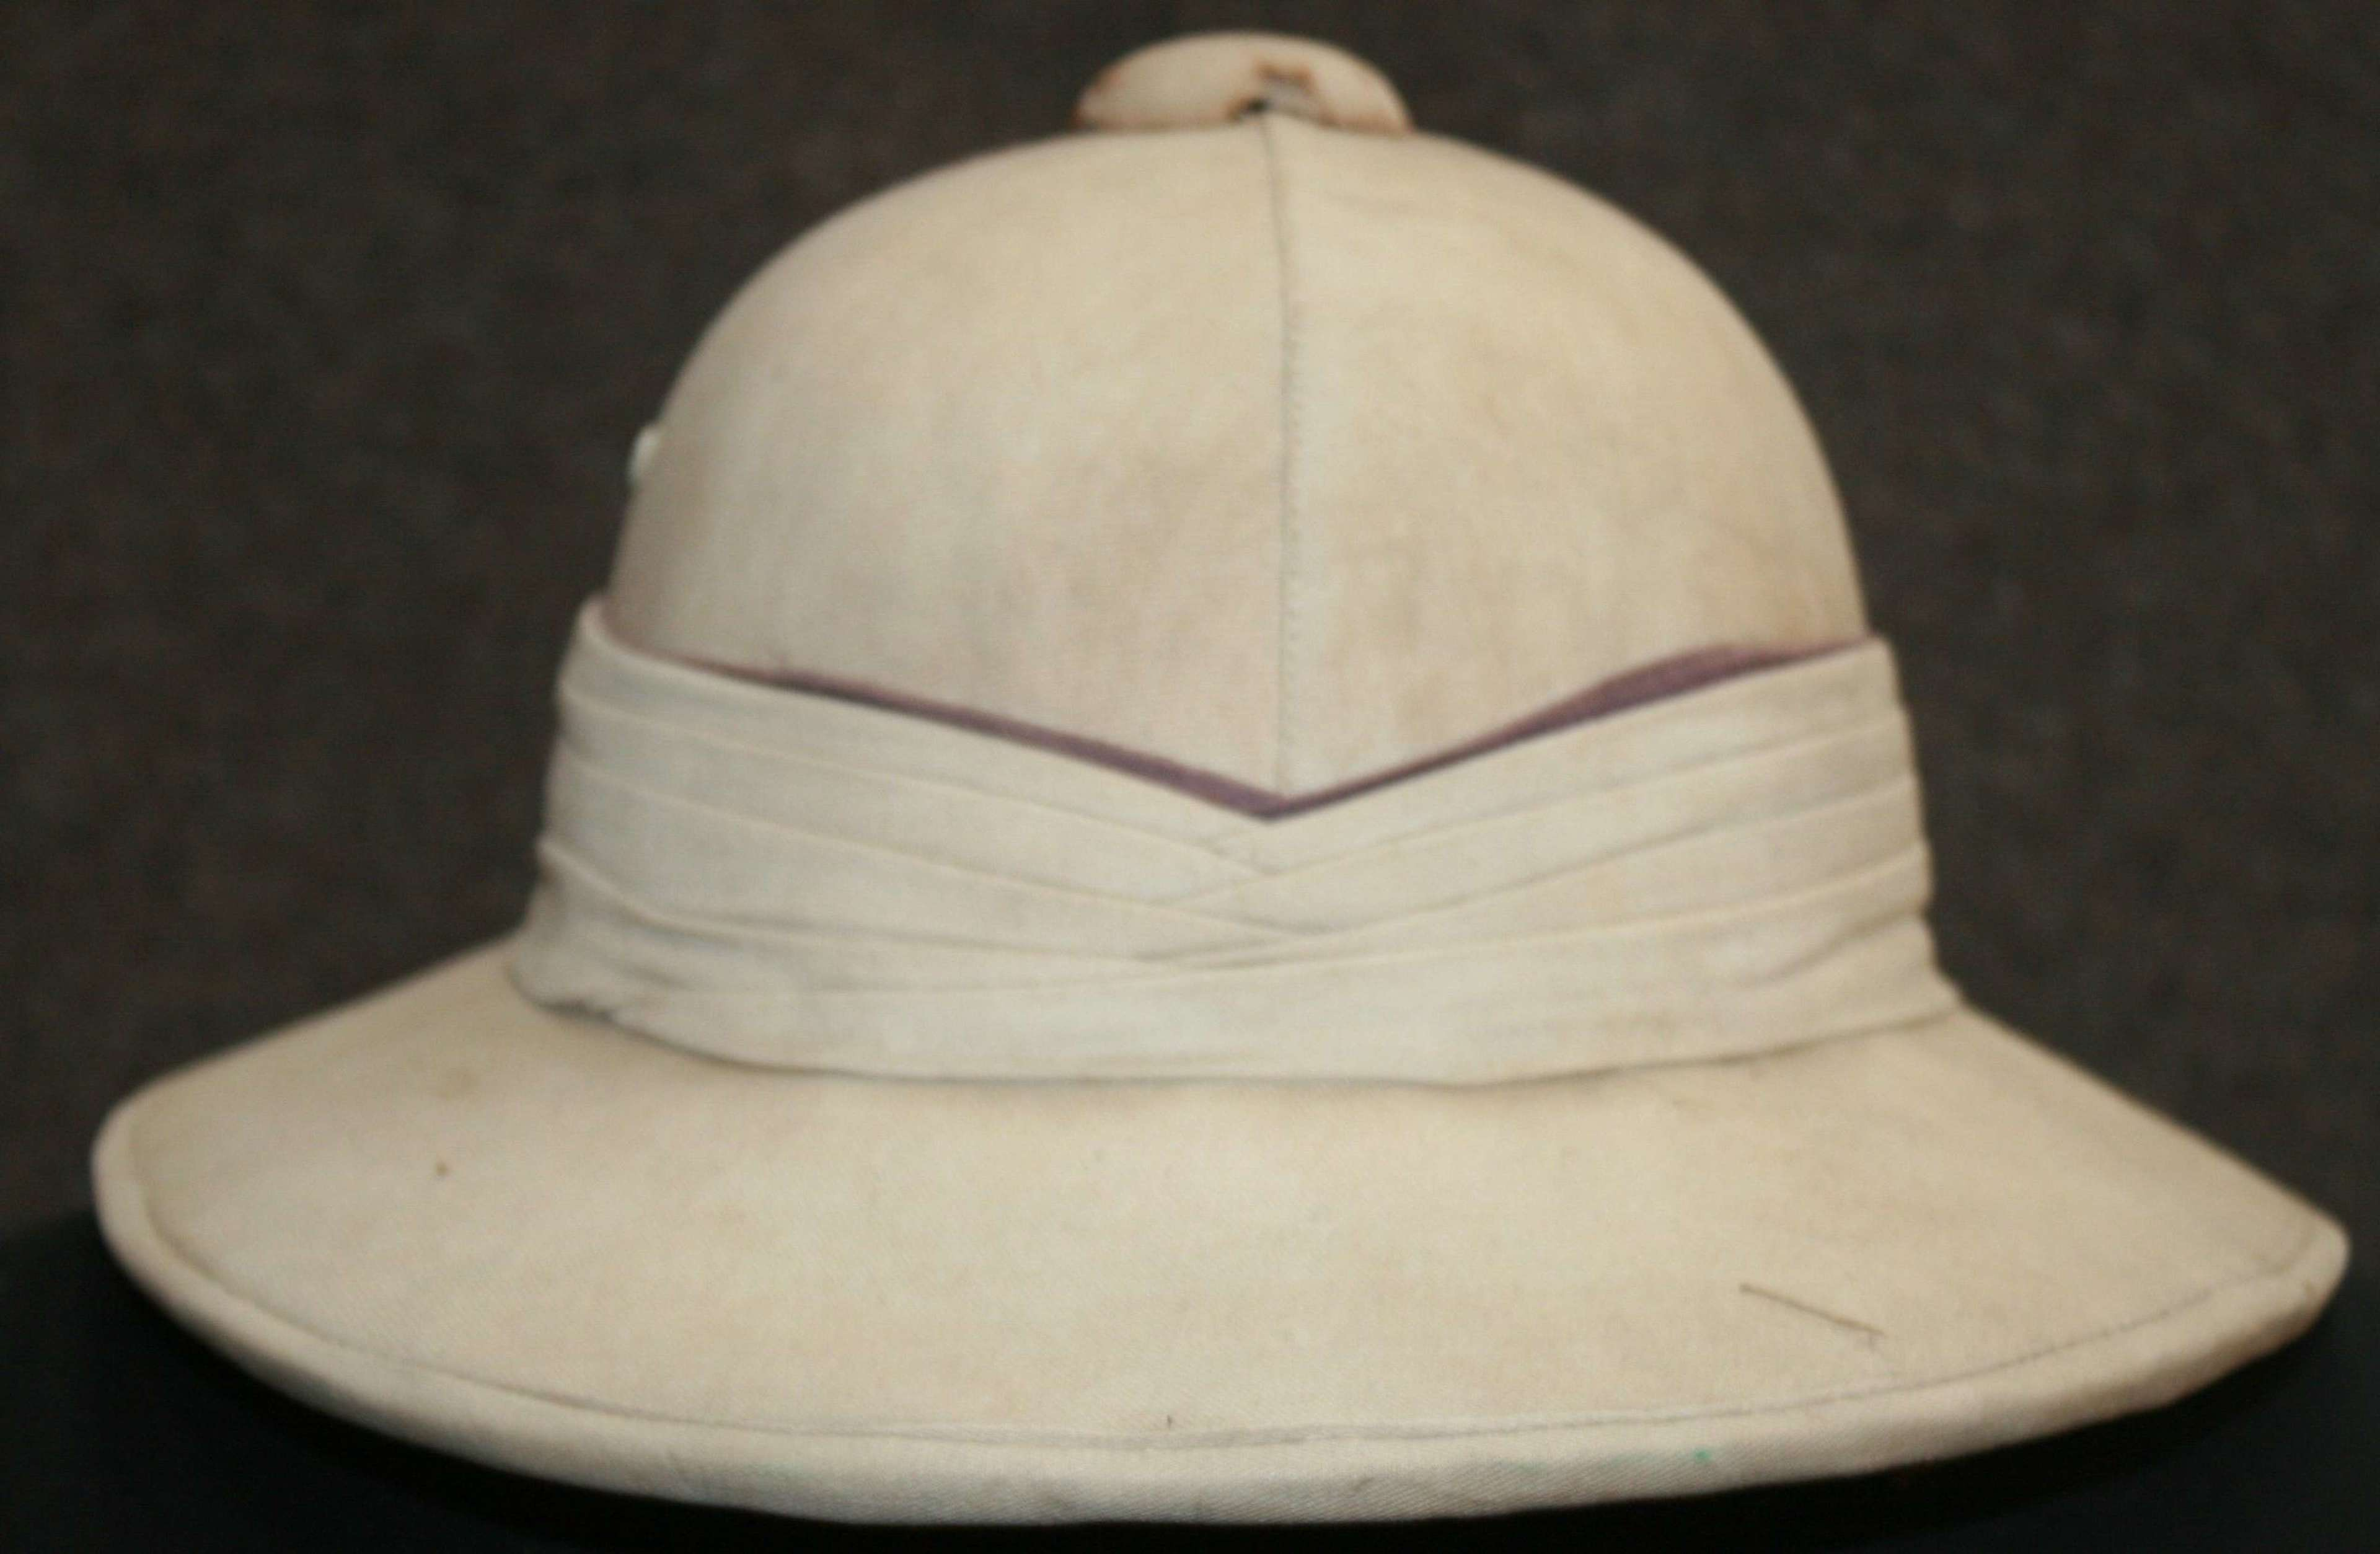 A PRIVATE PURCHASE ROYAL NAVY SOLAR HELMET